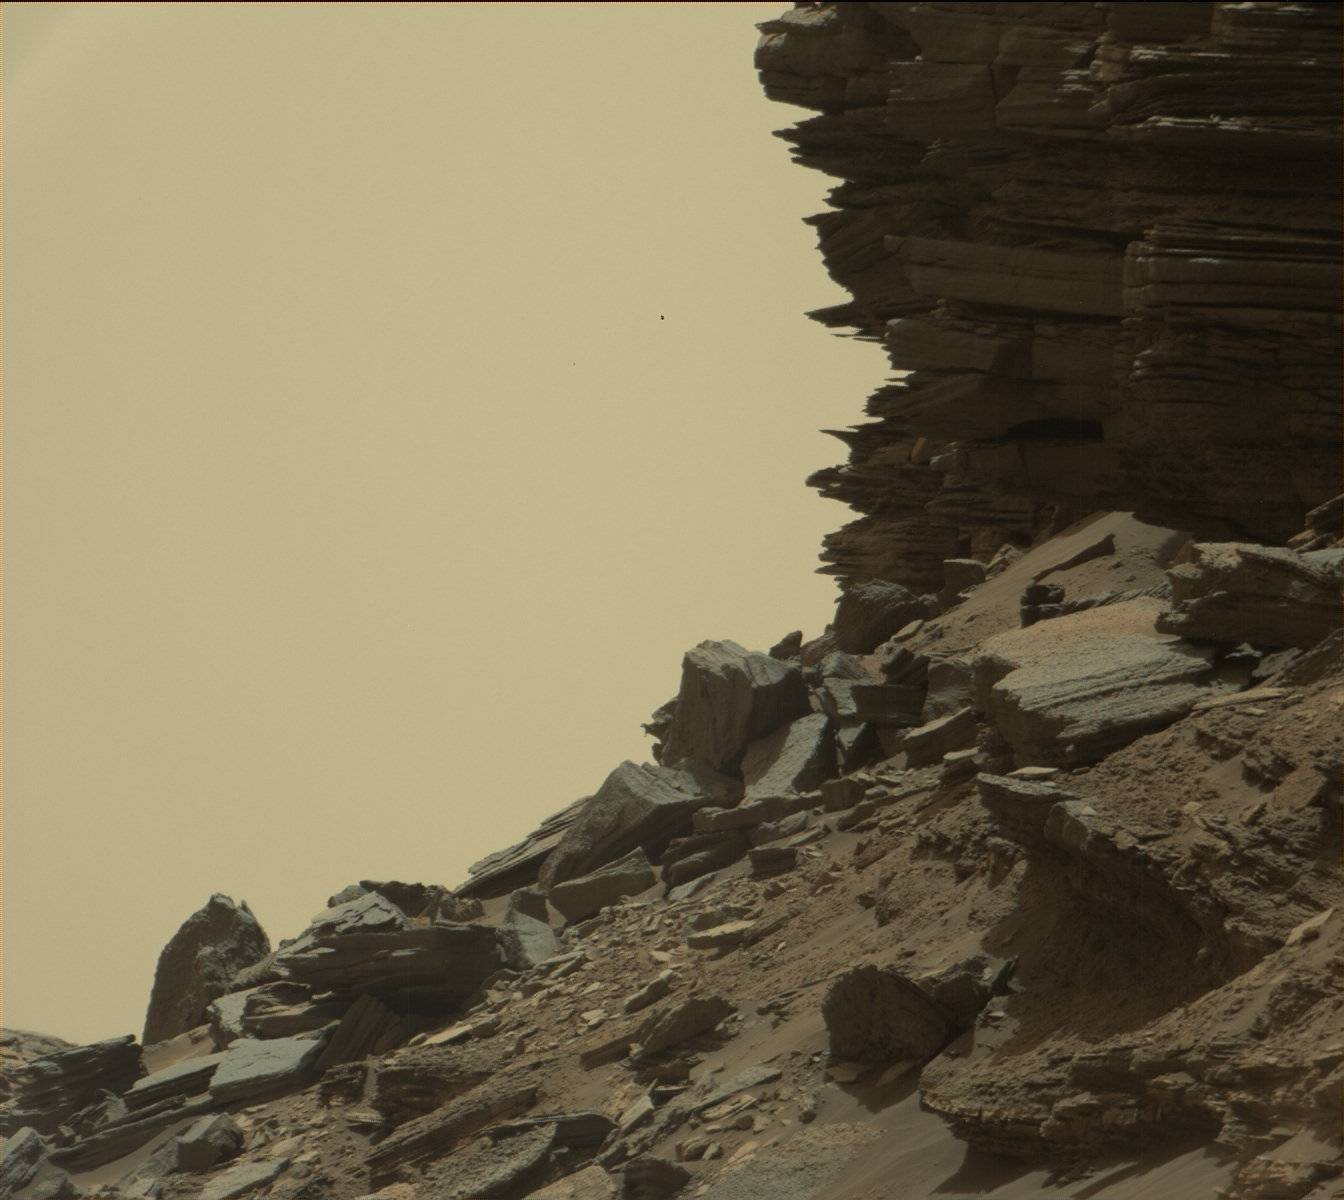 16-09-08-mars-curiosity-rover-msl-rock-layers-pia21045-full